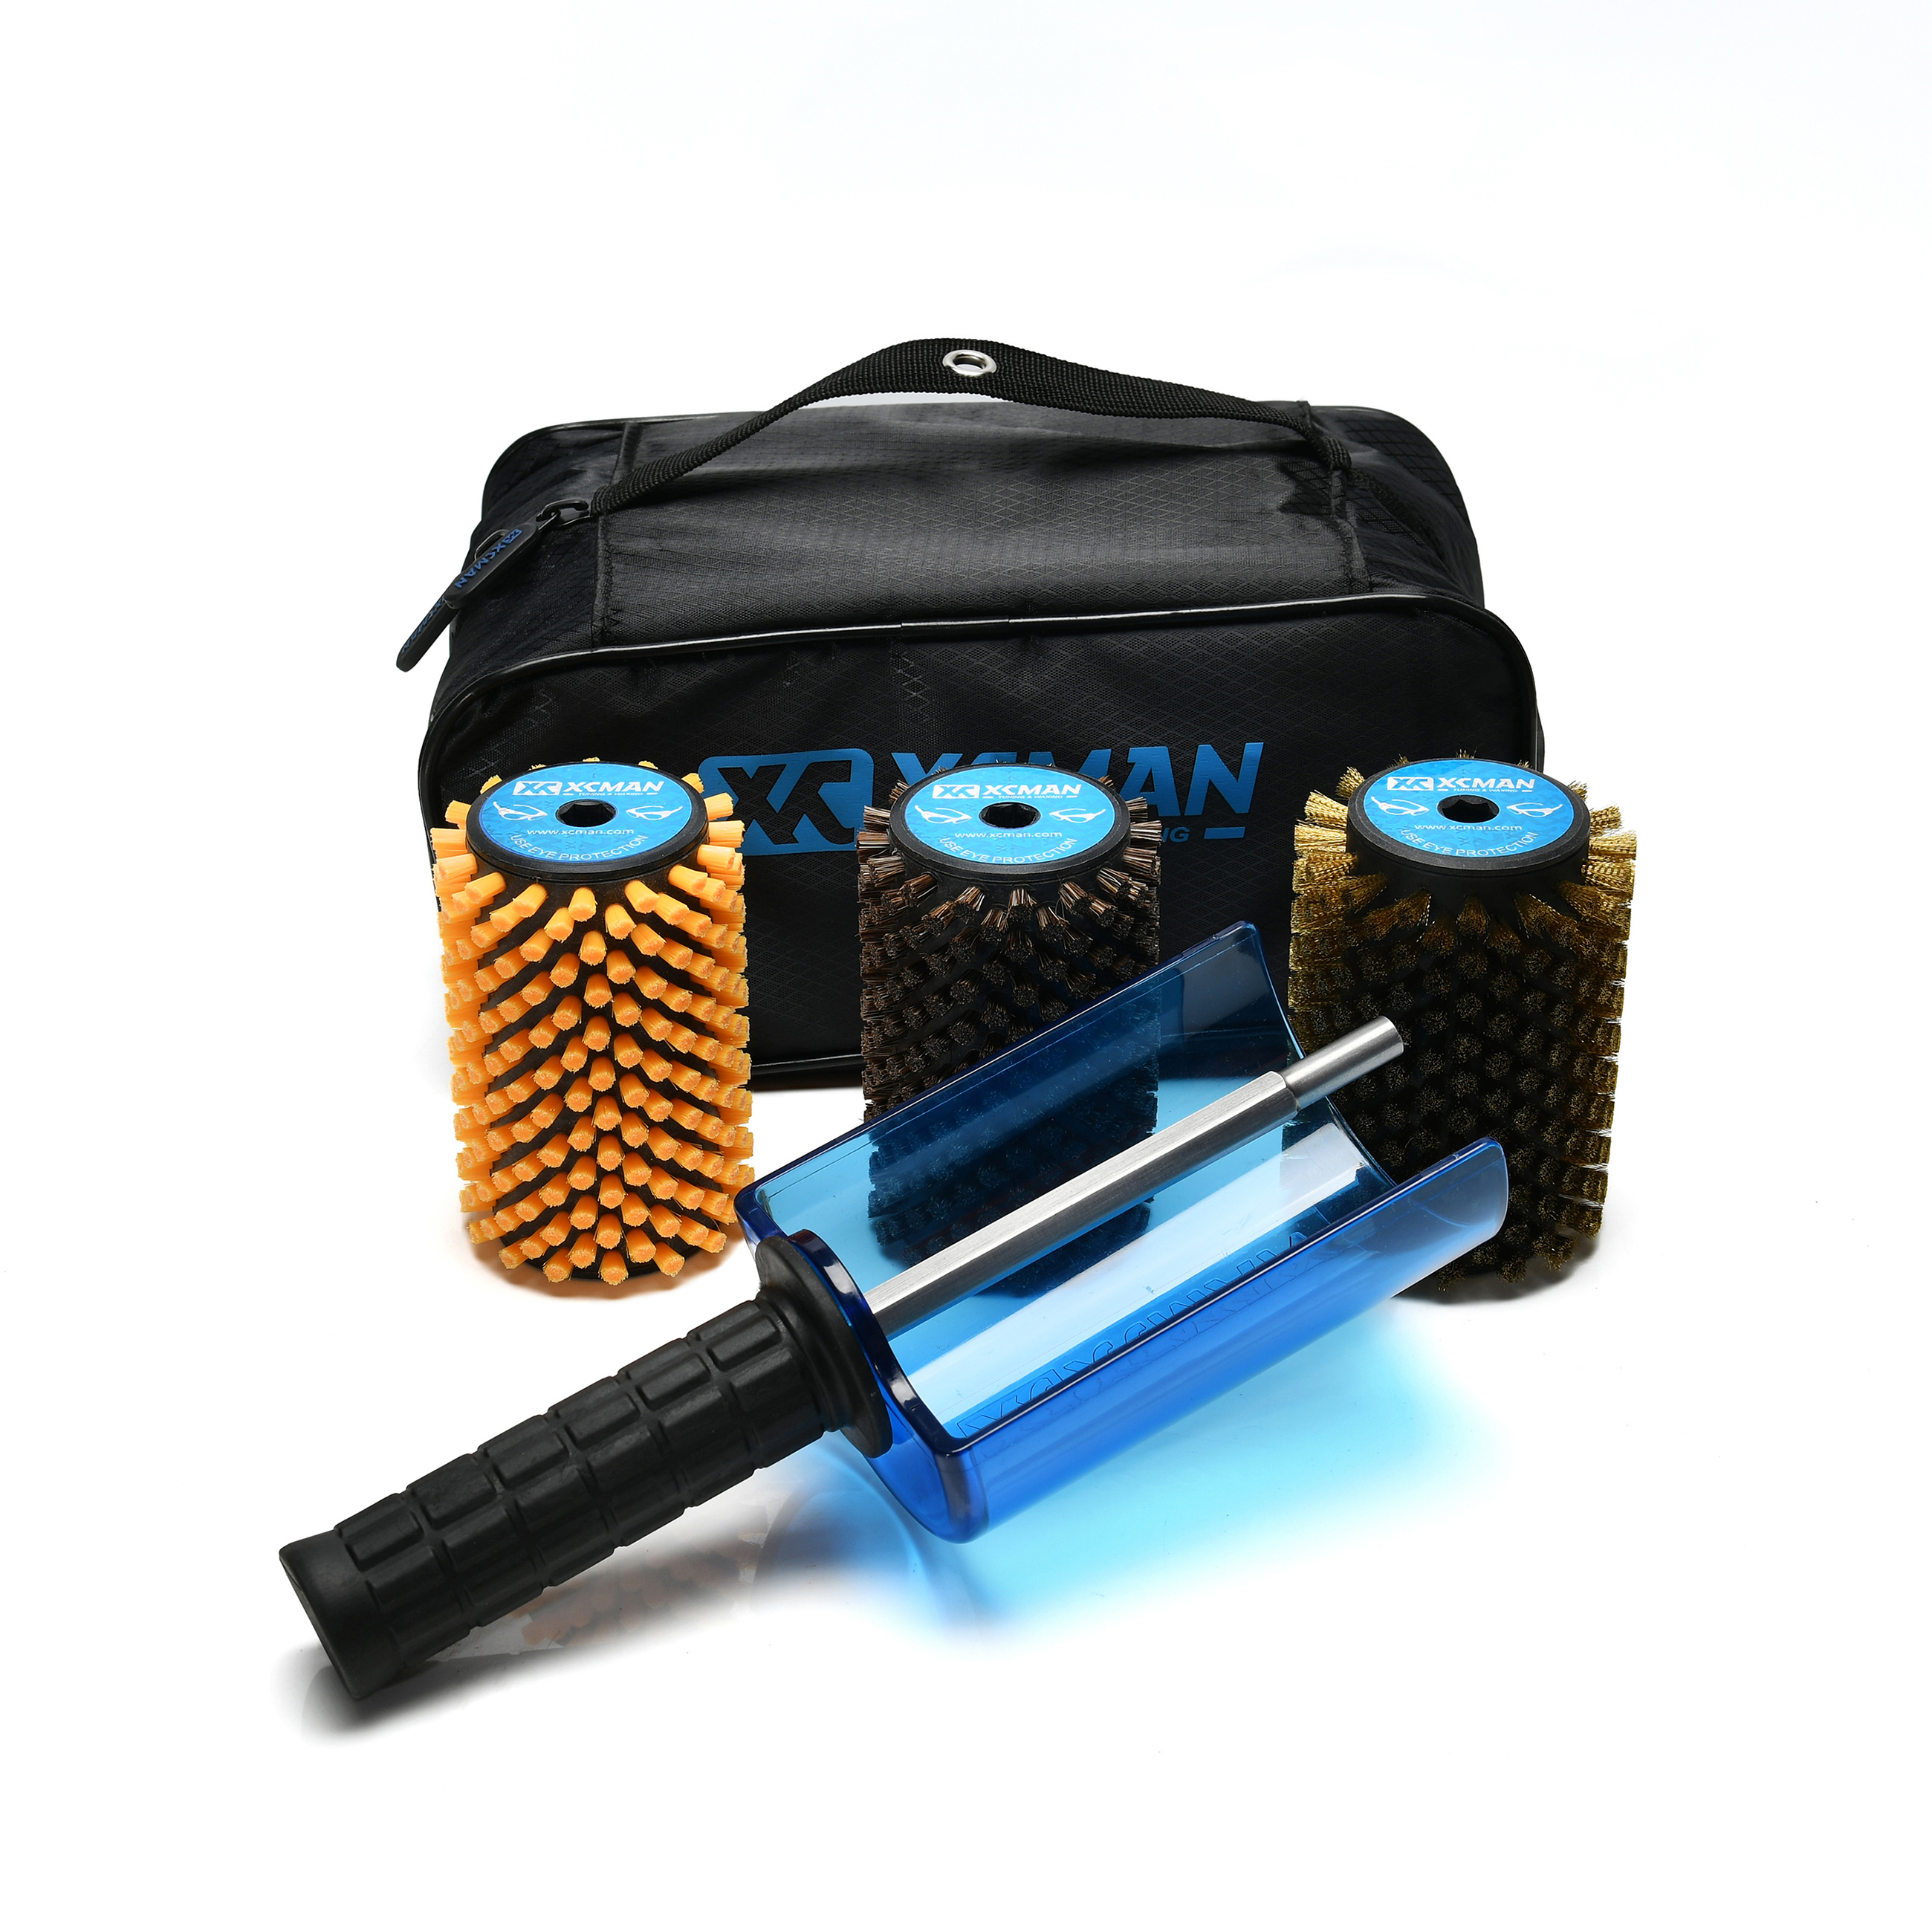 XCMAN Ski Roto Brush Kit Roto Brush Controller Handle  With All 3 Brushes: Nylon, Horsehair, Brass/Cork